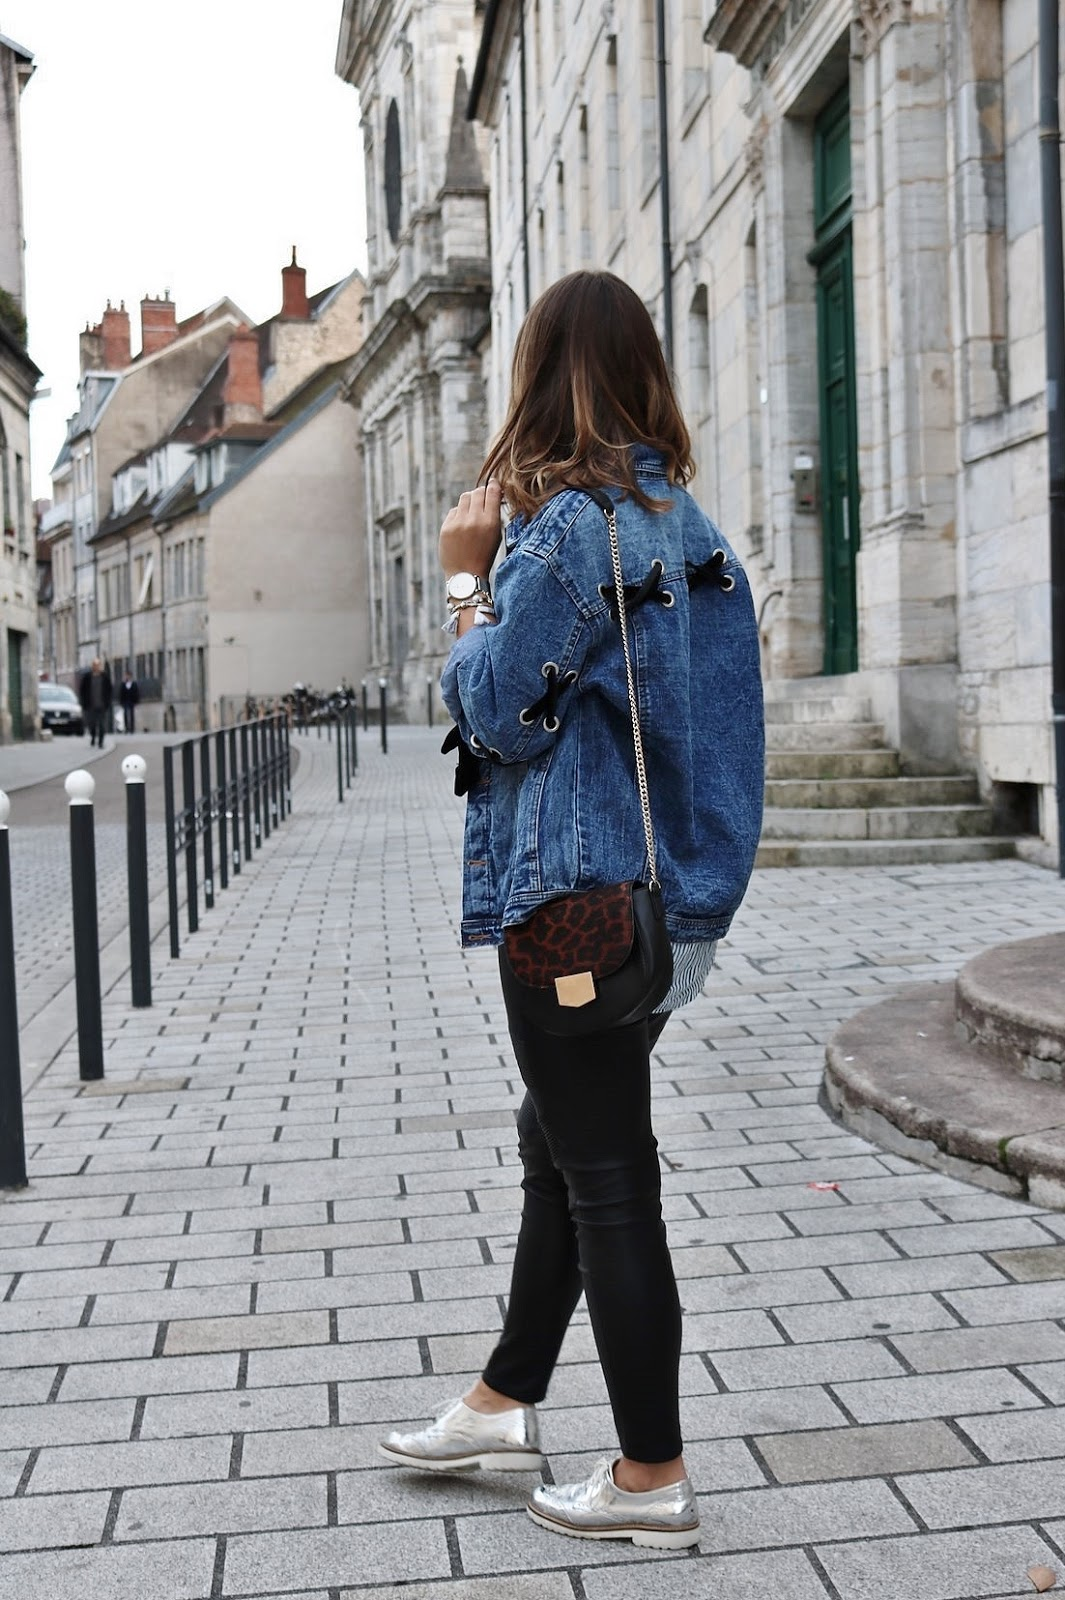 pauline-dress-tenue-look-besancon-veste-denim-lace-up-noir-tregging-chemise-rayee-sac-leo-plan-pied-plain